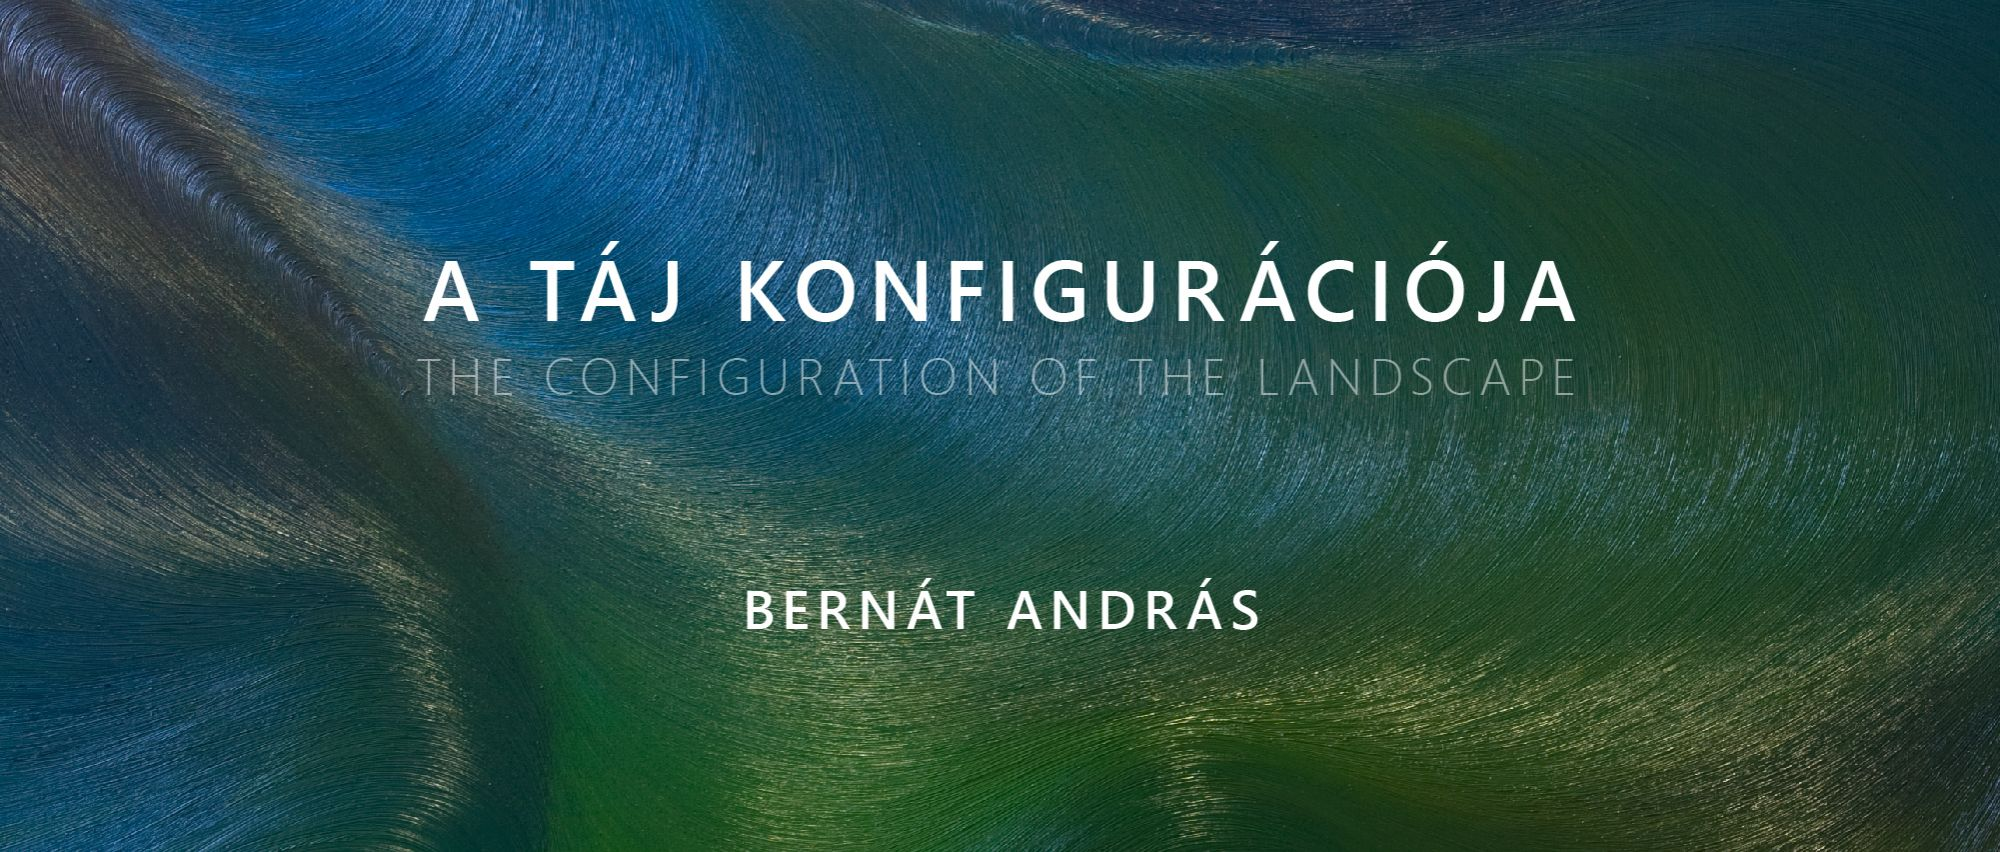 The configuration of the landscape